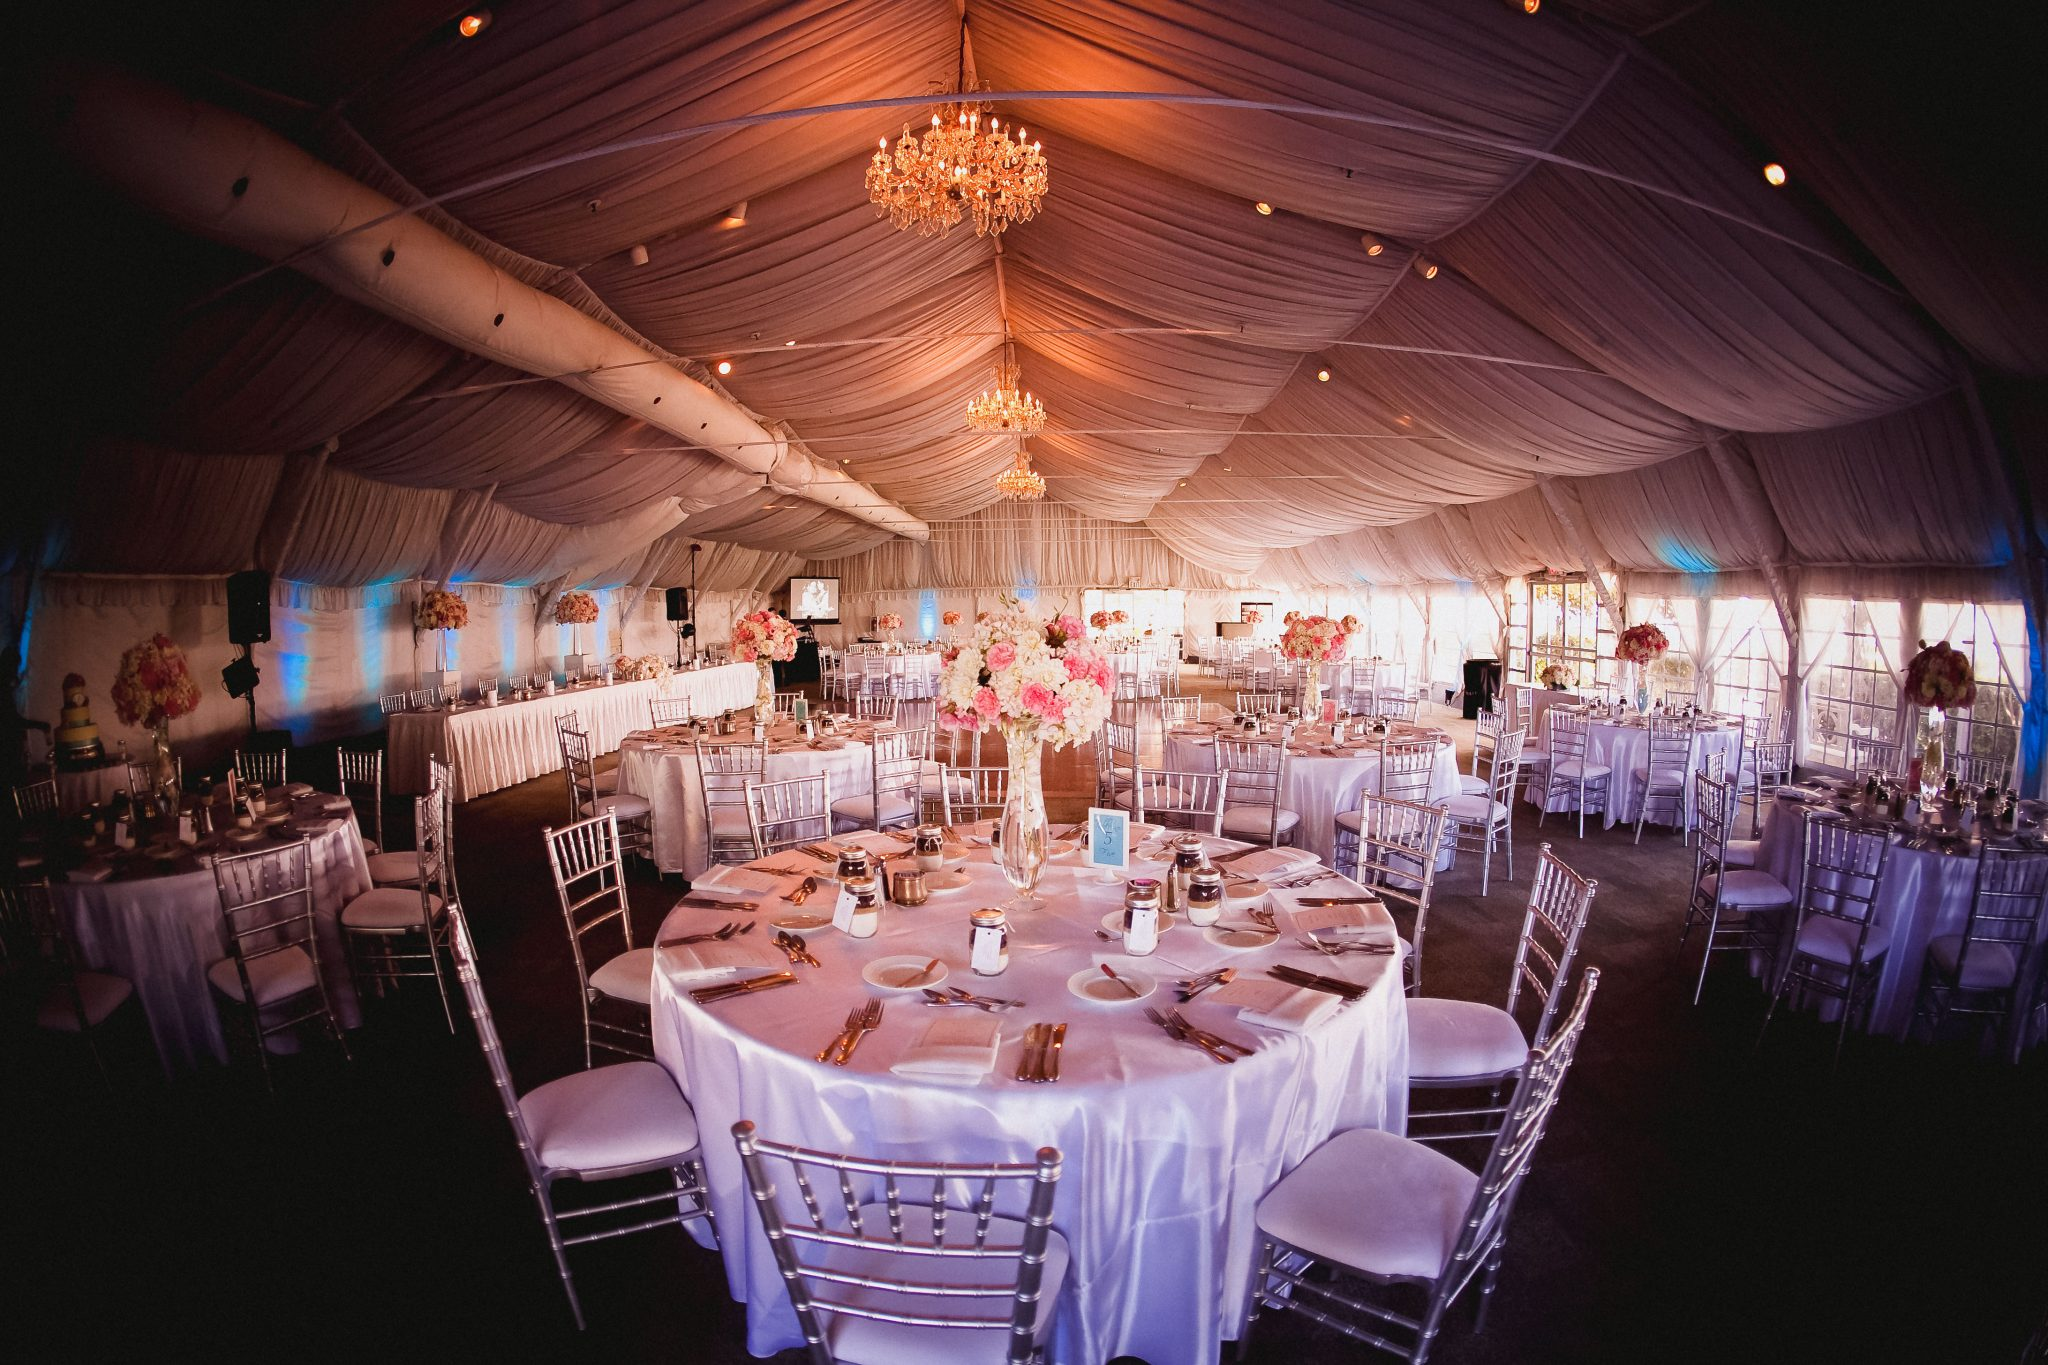 Wedding reception room with chandeliers and table decor